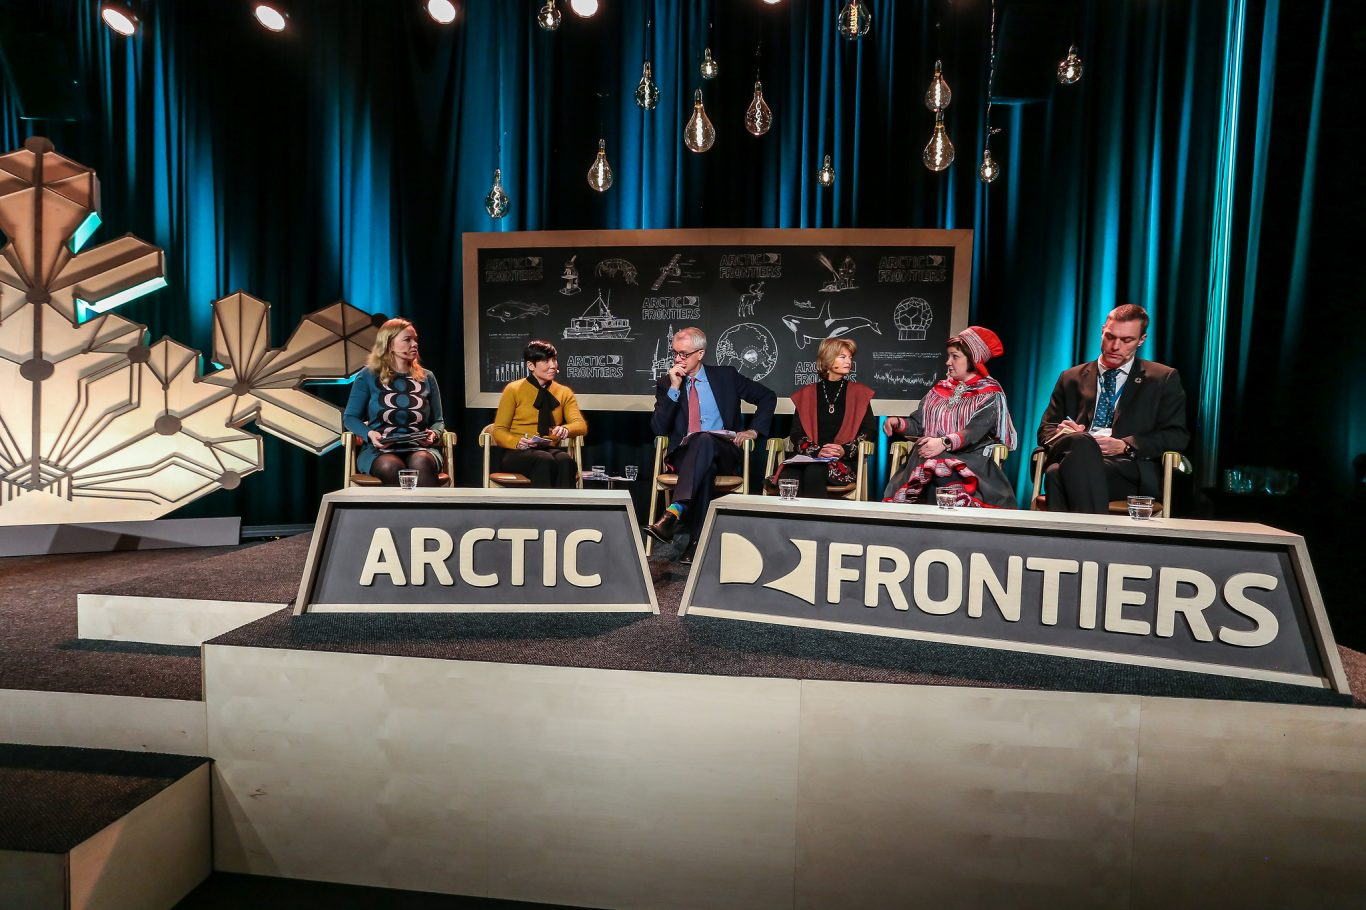 From left to right: Katri Kulmuni Member of Finnish Parliament and Chair of the Finnish Delegation of Parliamentarians of the Arctic Region / Ine Eriksen Søreide Minister of Foreign Affairs of Norway / Stephen Sackur Moderator / Lisa Murkowski United States Senator for Alaska /Aili Keskitalo President of the Sami Parliament of Norway / Tore Furevik Professor, University of Bergen and Director of the Bjerknes Centre for Climate Research. Foto: Alberto Grohovaz/Arctic Frontiers 2019